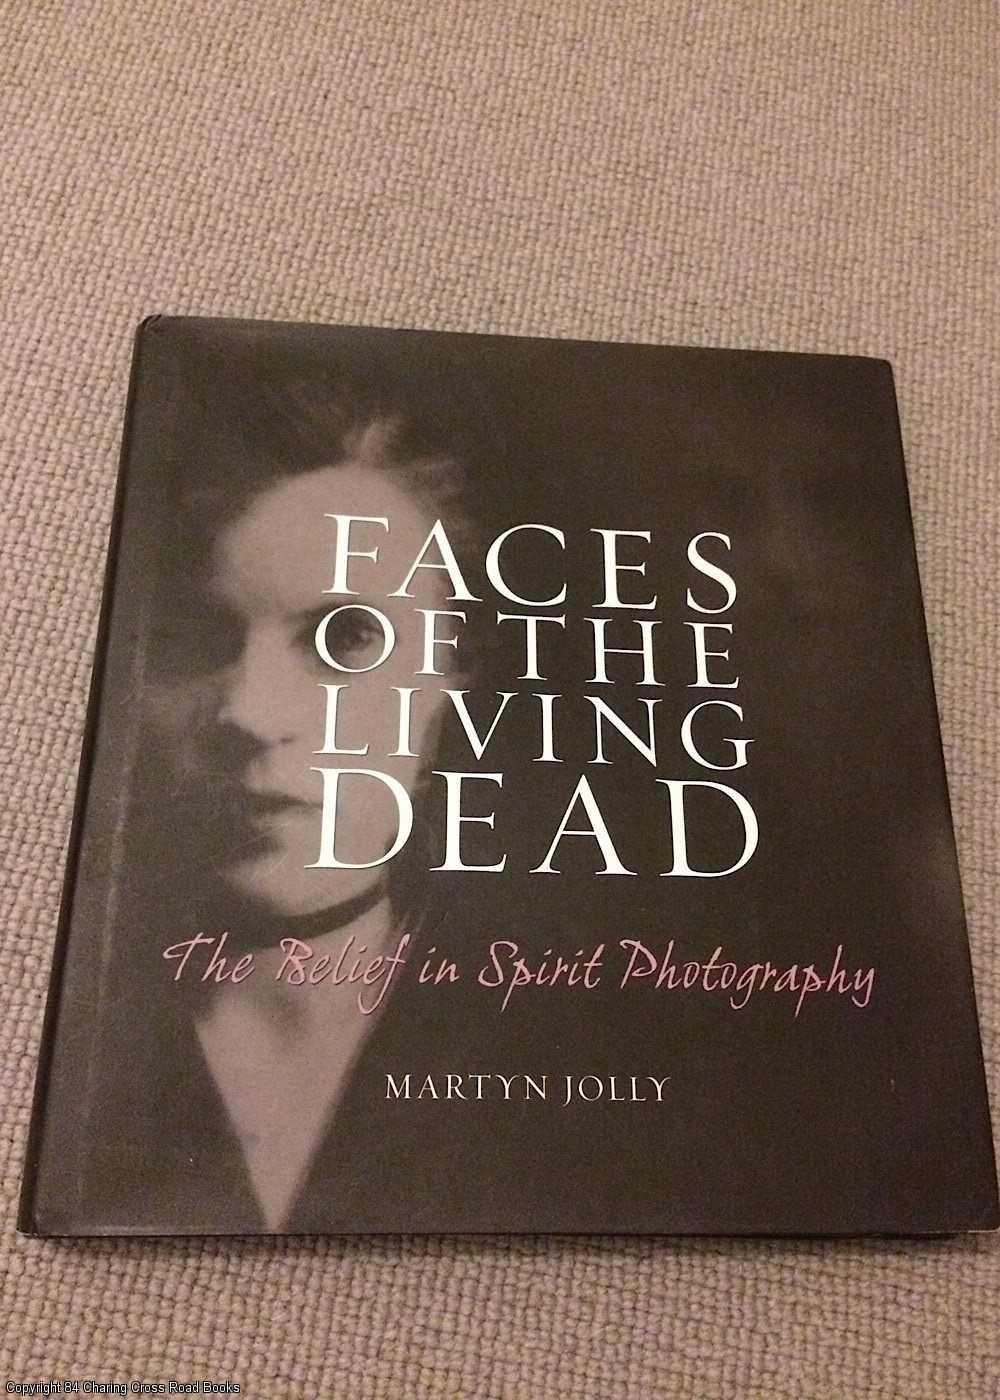 MARTYN JOLLY - Faces of the Living Dead: The Belief in Spirit Photography